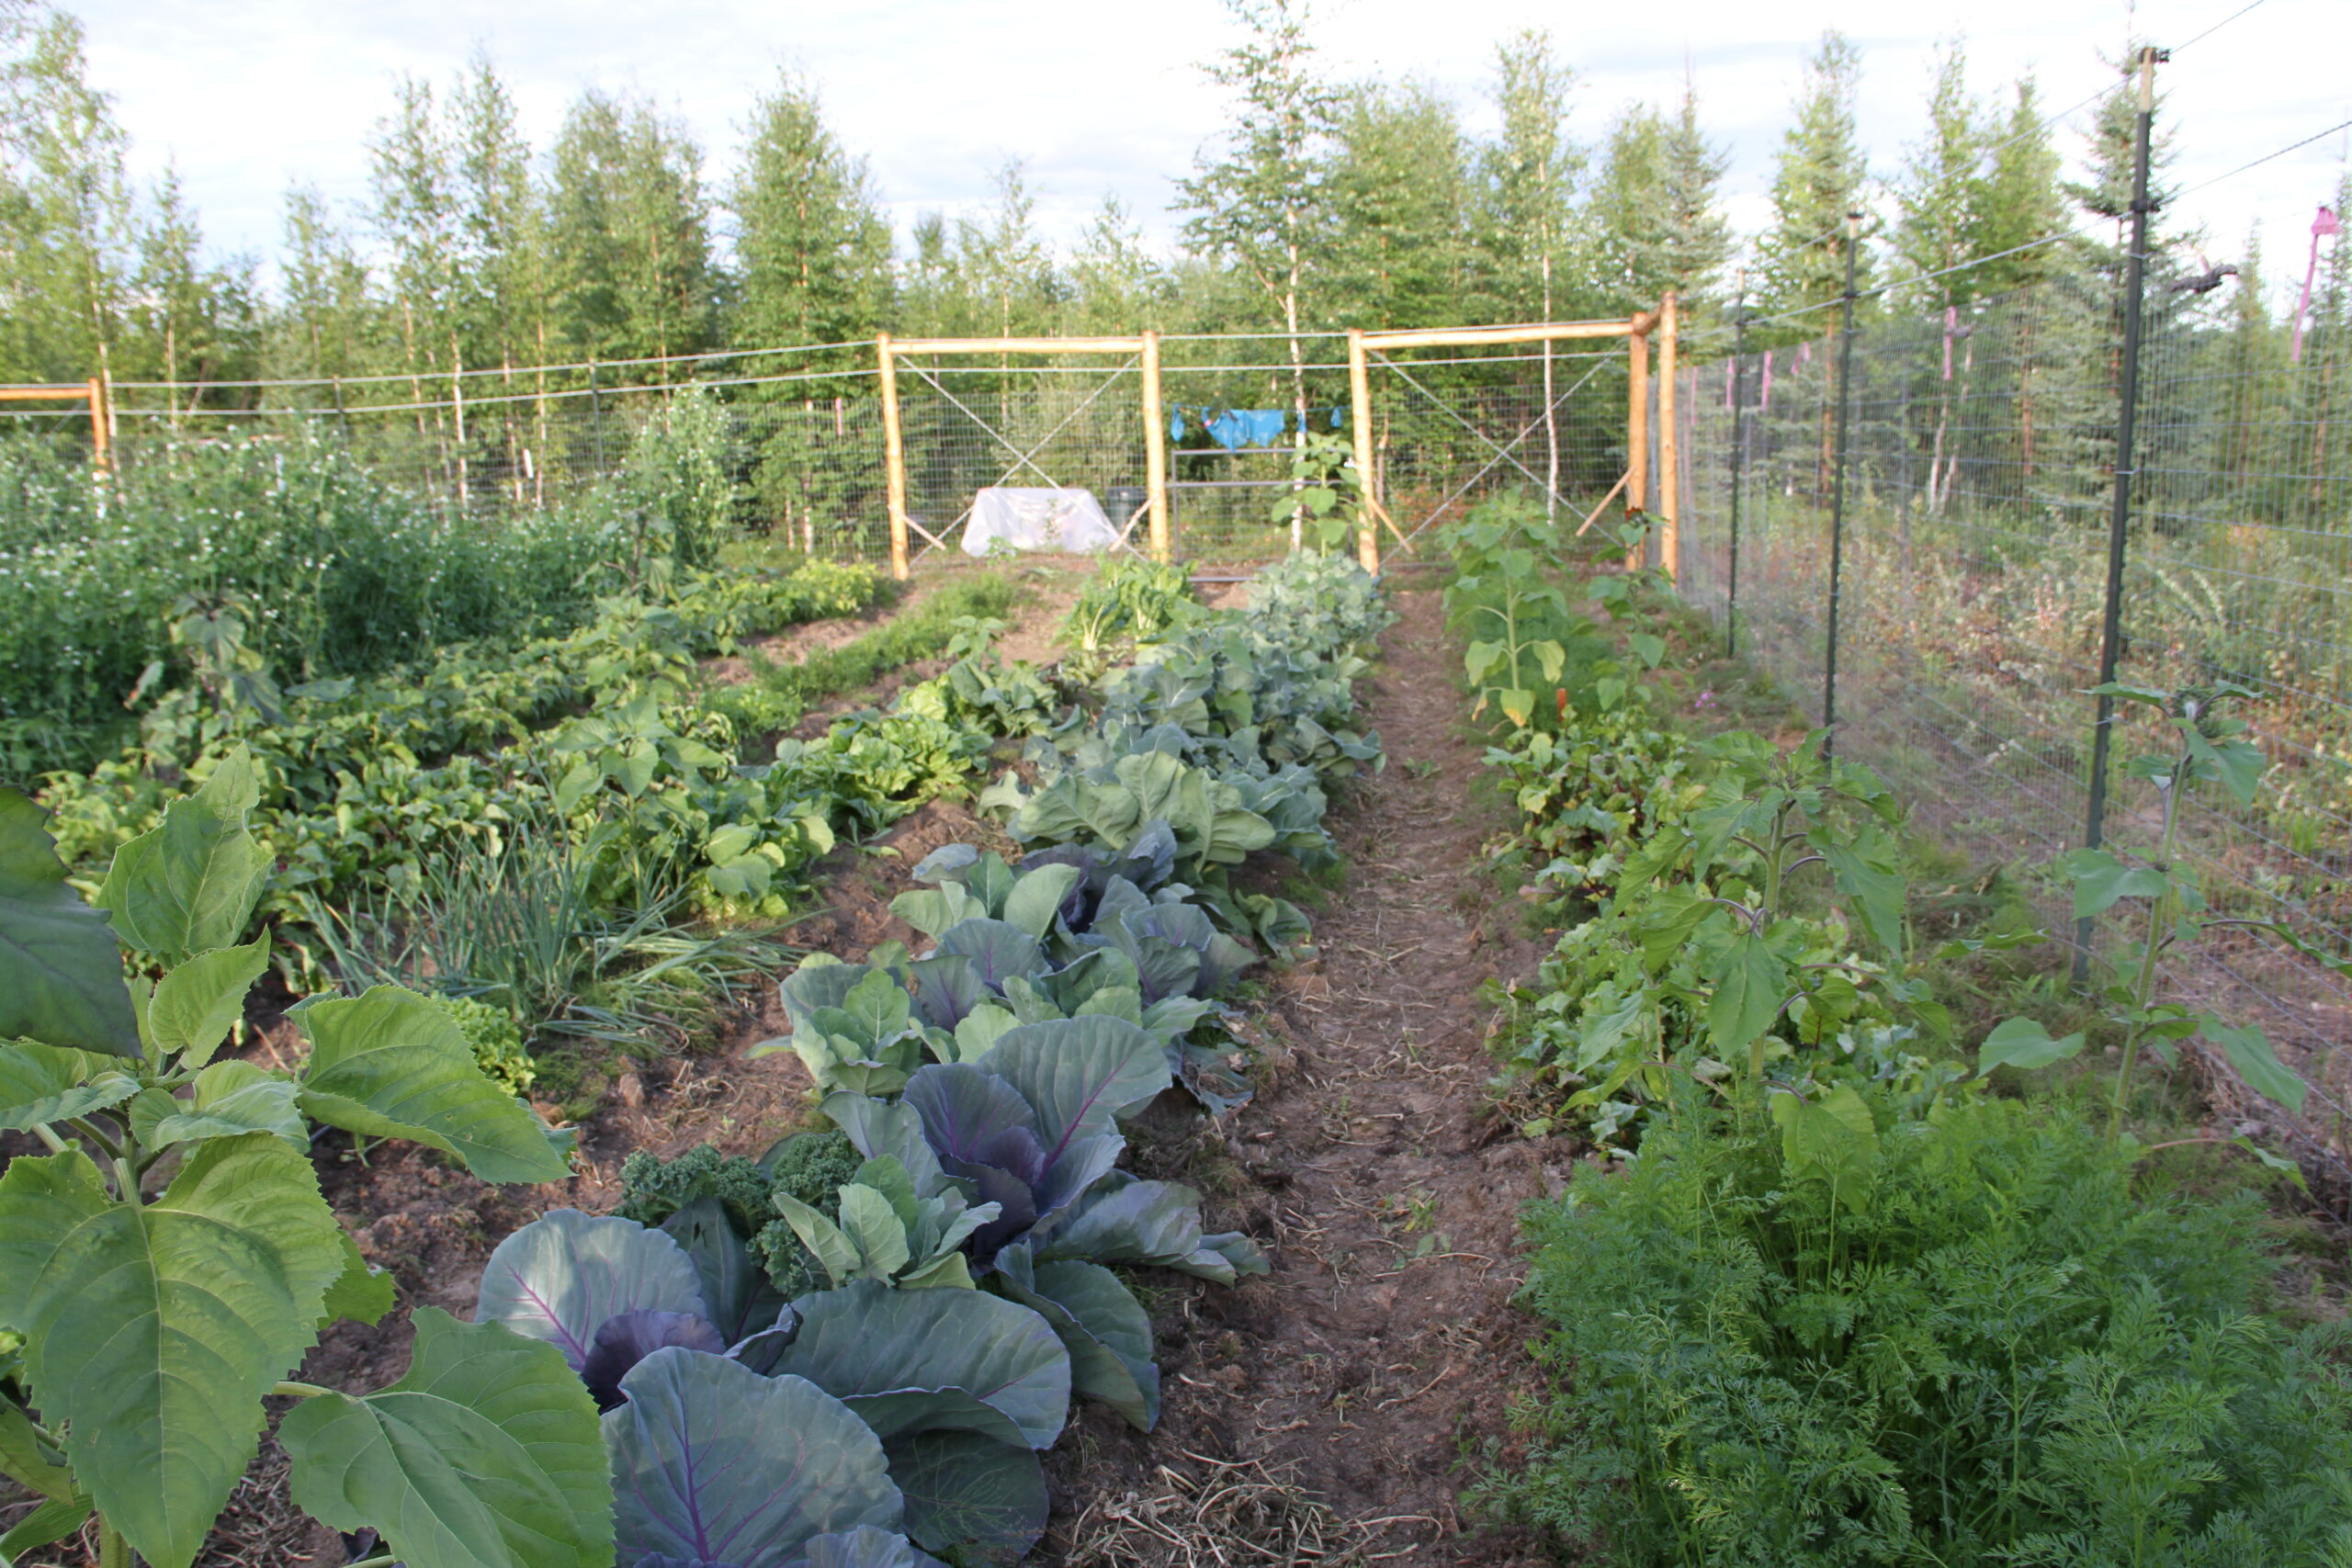 Four rows of mixed vegetables including cabbage, leeks, and carrots inside of Heidi's fenced garden area.